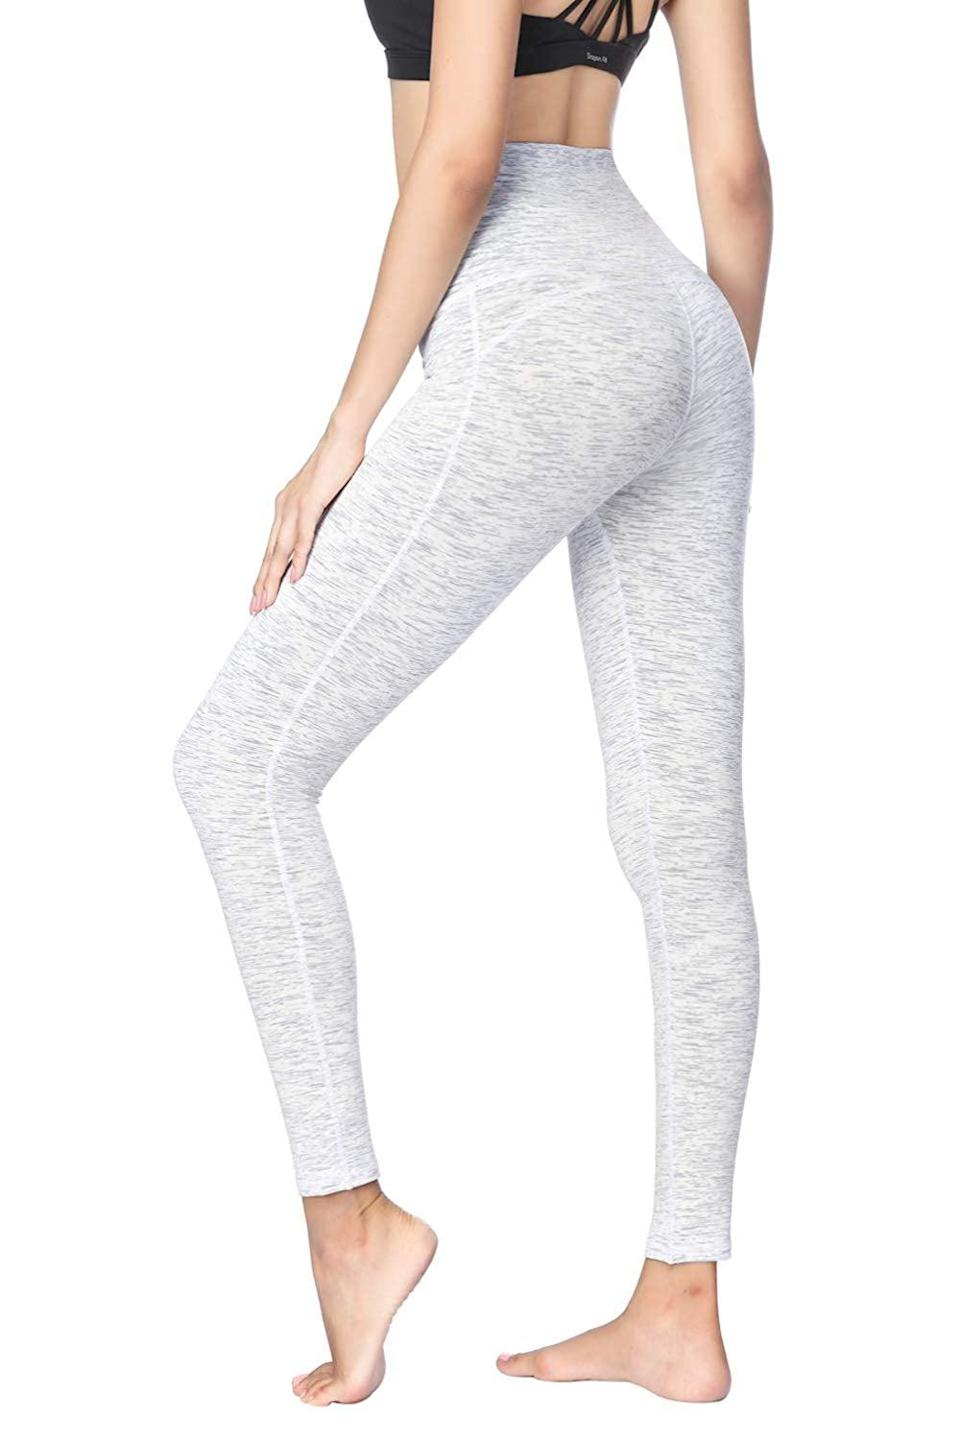 """<p>With four-way stretch and a thick, opaque fabric, many customers prefer these <a href=""""https://www.popsugar.com/buy/Dragon-Fit-Compression-Yoga-Pants-365705?p_name=Dragon%20Fit%20Compression%20Yoga%20Pants&retailer=amazon.com&pid=365705&price=21&evar1=fit%3Aus&evar9=45278643&evar98=https%3A%2F%2Fwww.popsugar.com%2Ffitness%2Fphoto-gallery%2F45278643%2Fimage%2F45278653%2FDragon-Fit-Compression-Yoga-Pants&list1=shopping%2Camazon%2Cworkout%20clothes%2Cleggings%2Cfitness%20gear&prop13=mobile&pdata=1"""" class=""""link rapid-noclick-resp"""" rel=""""nofollow noopener"""" target=""""_blank"""" data-ylk=""""slk:Dragon Fit Compression Yoga Pants"""">Dragon Fit Compression Yoga Pants</a> ($21) to much higher-priced designer alternatives.</p>"""